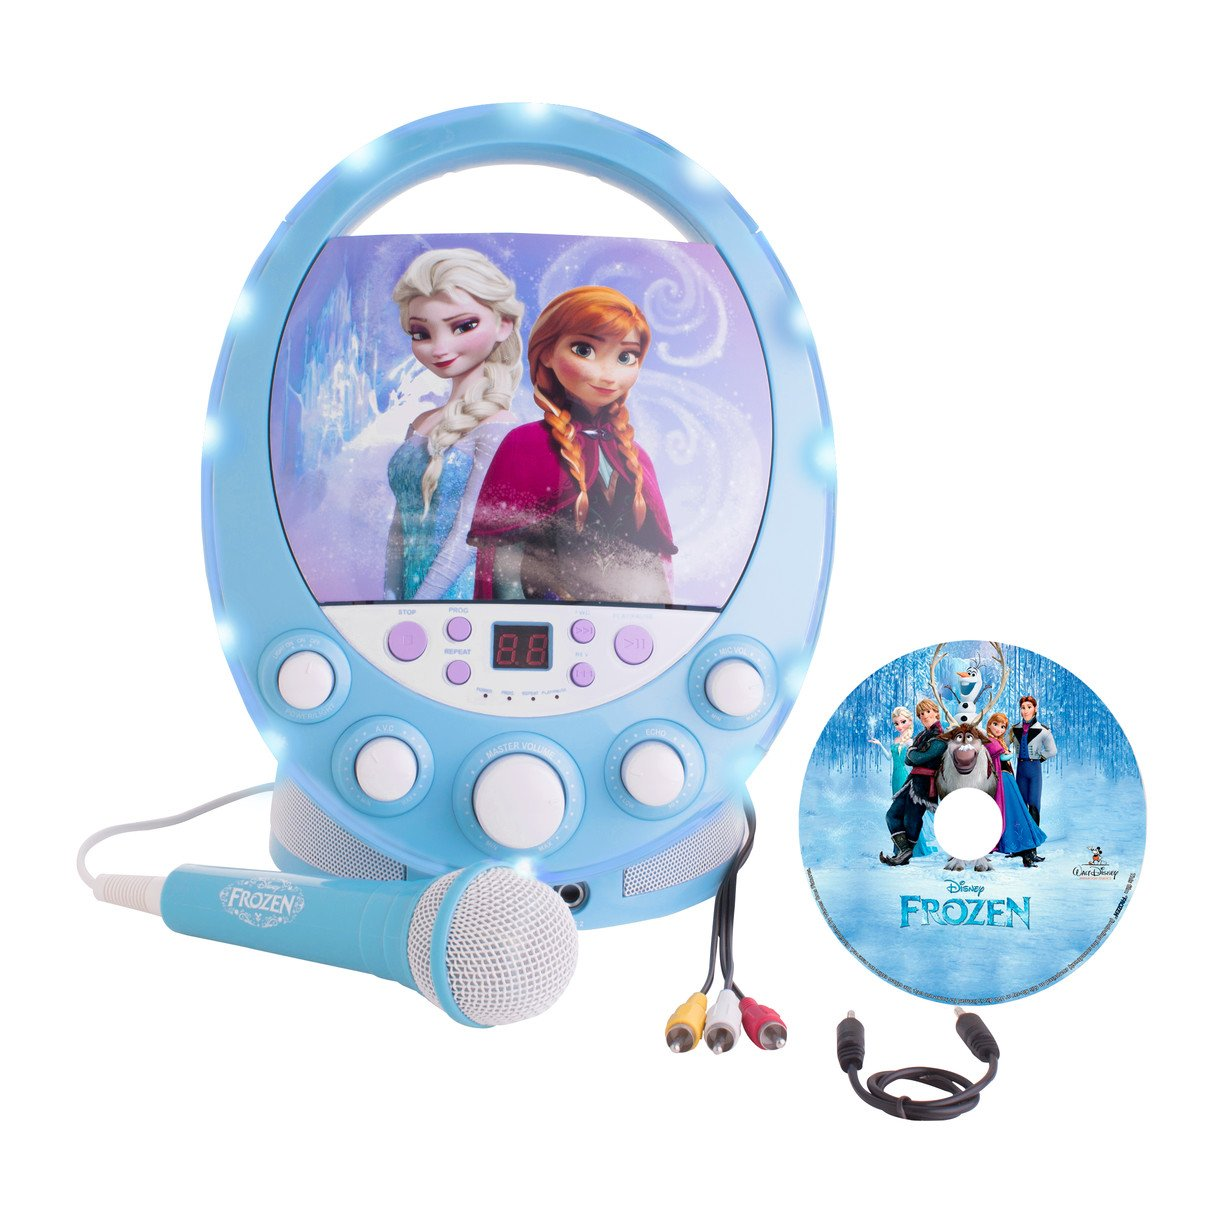 Frozen Disney's Karaoke Machine with Bonus FREE CD-G Songs from the HIT MOVIE Color and Style May Vary